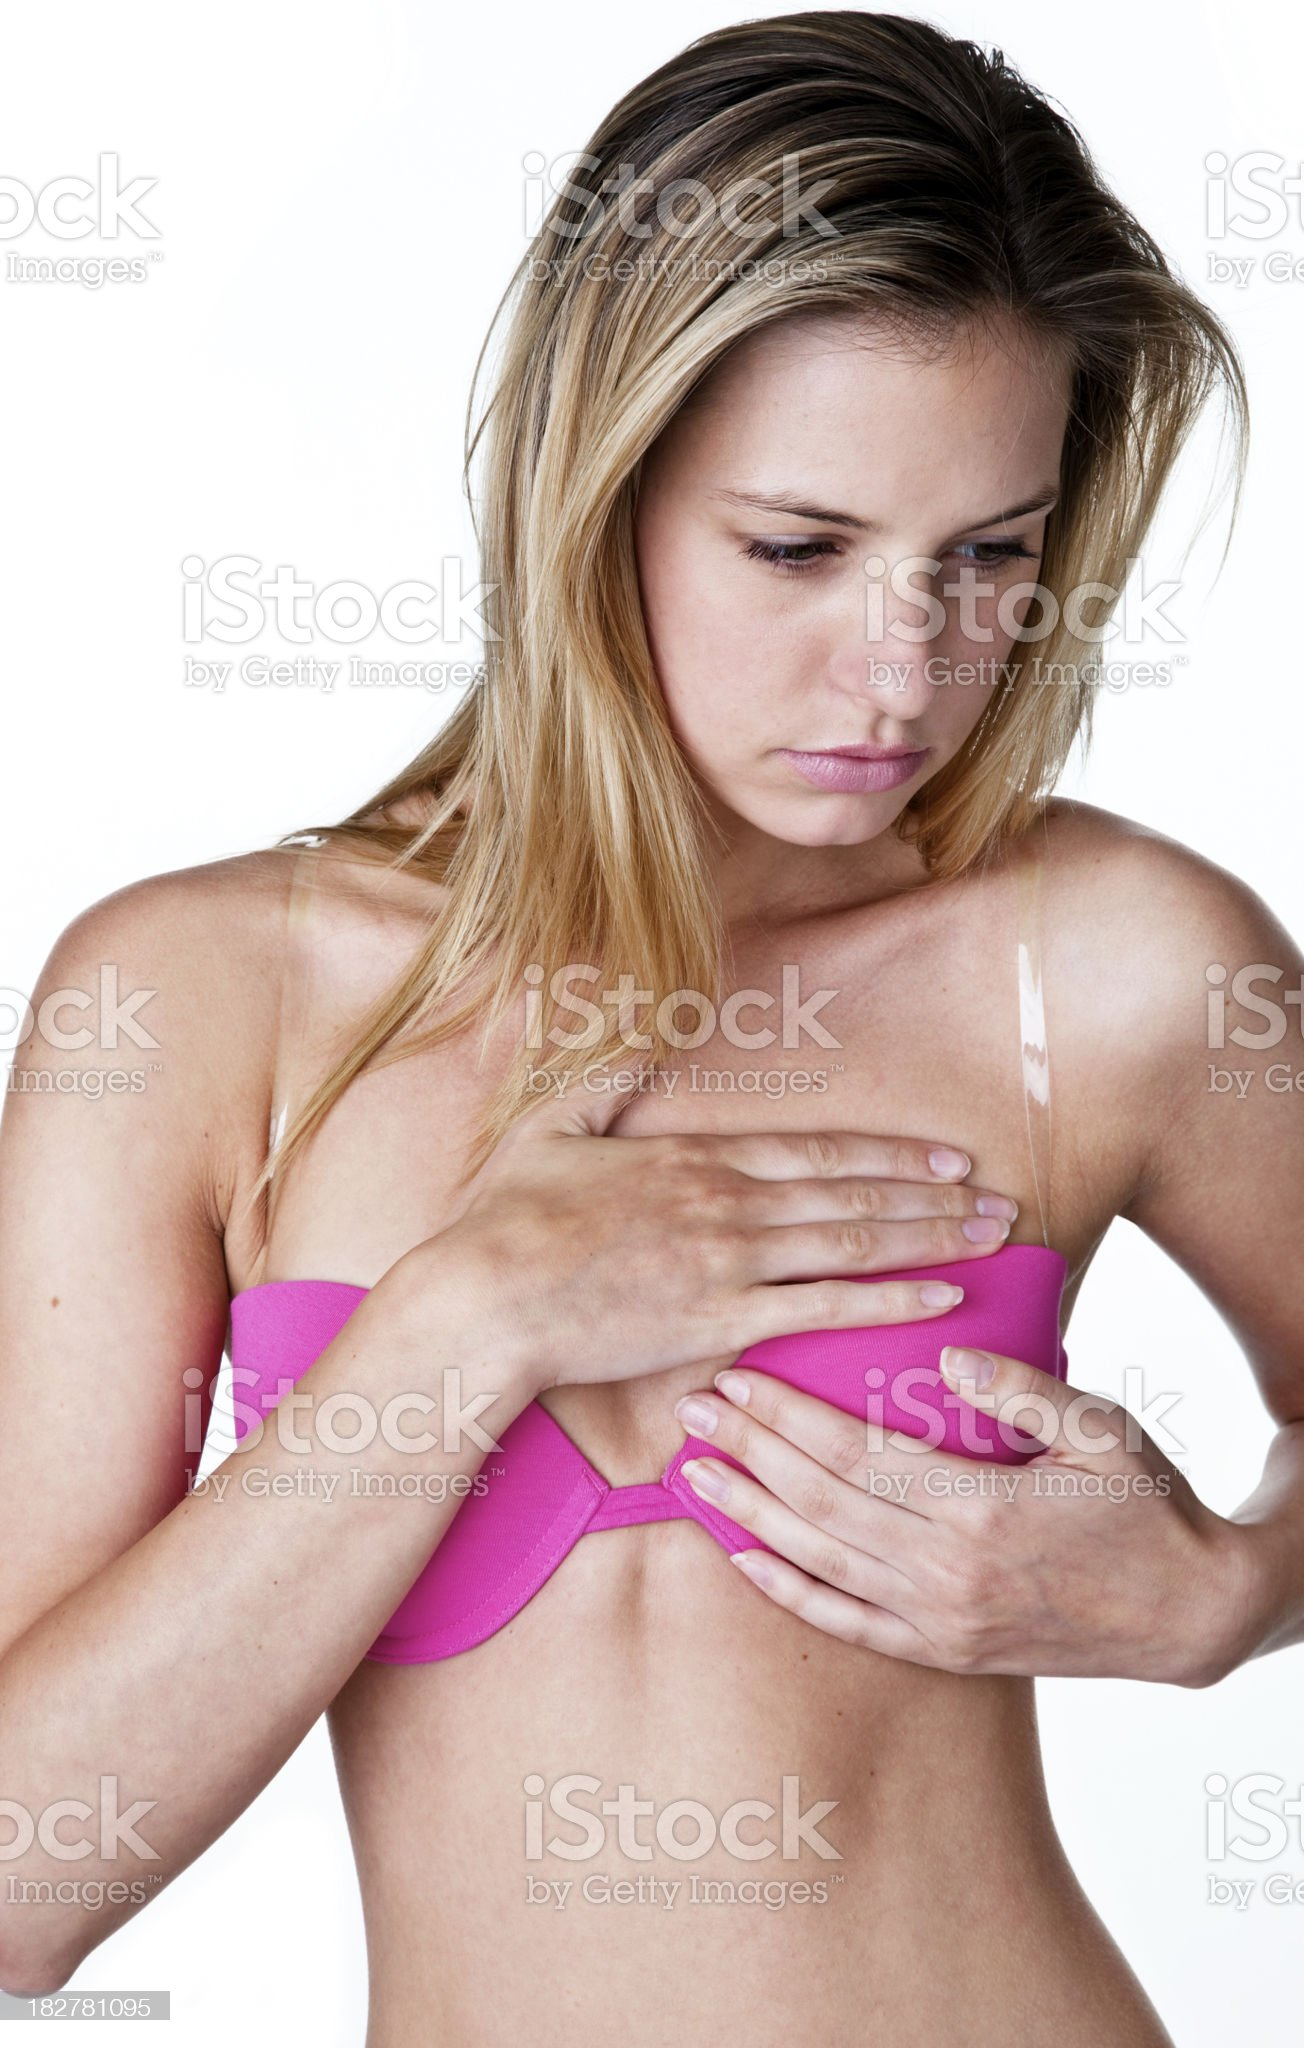 Cancer awareness concept royalty-free stock photo